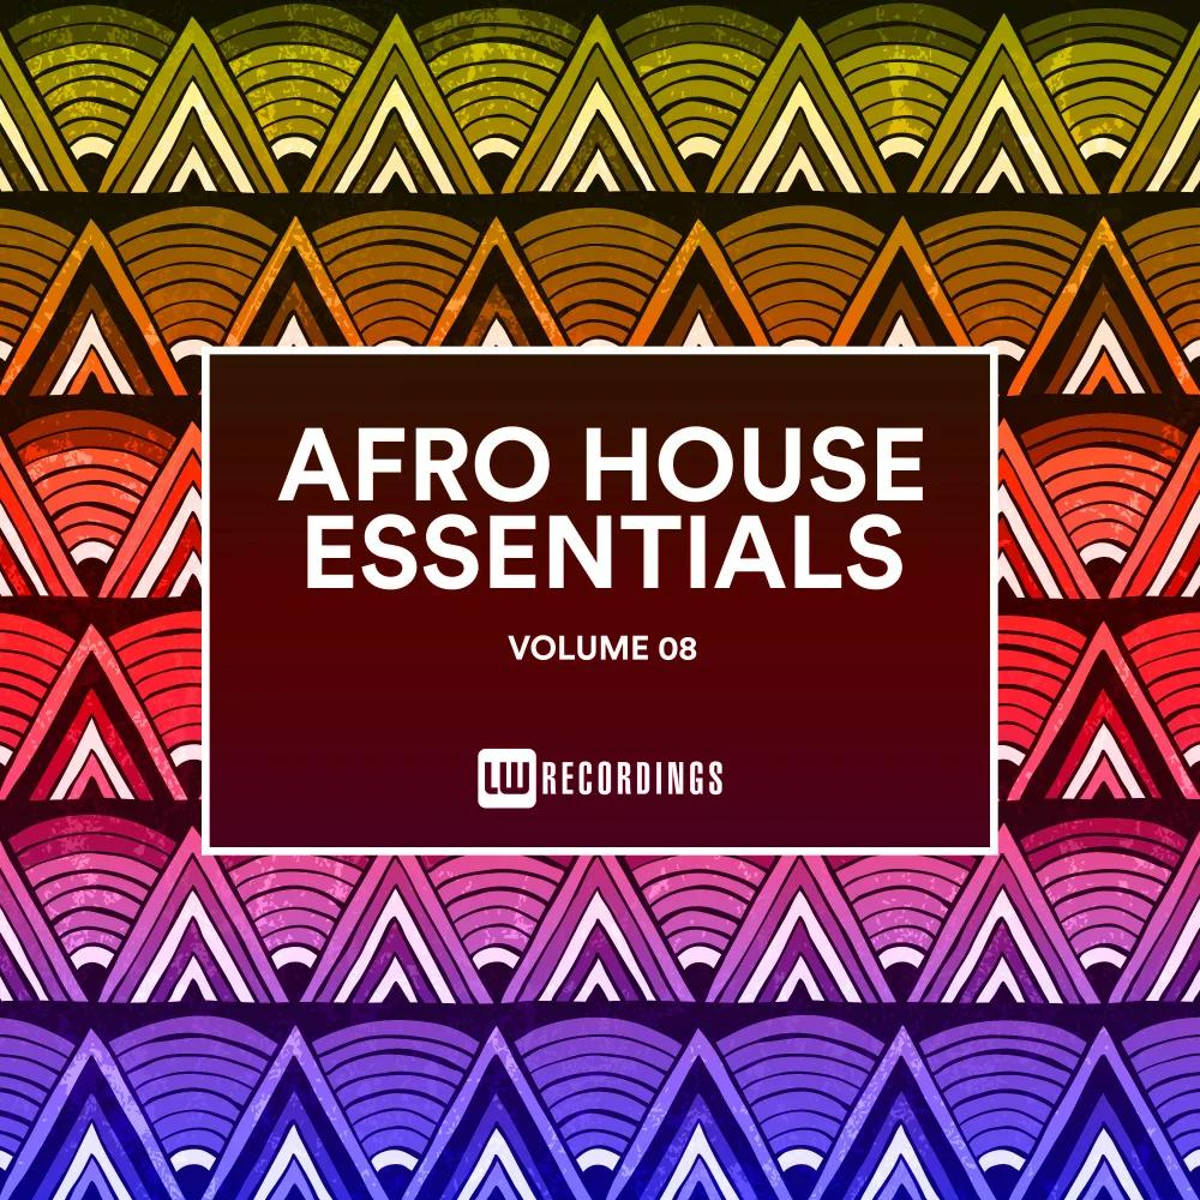 VA - Afro House Essentials, Vol. 08